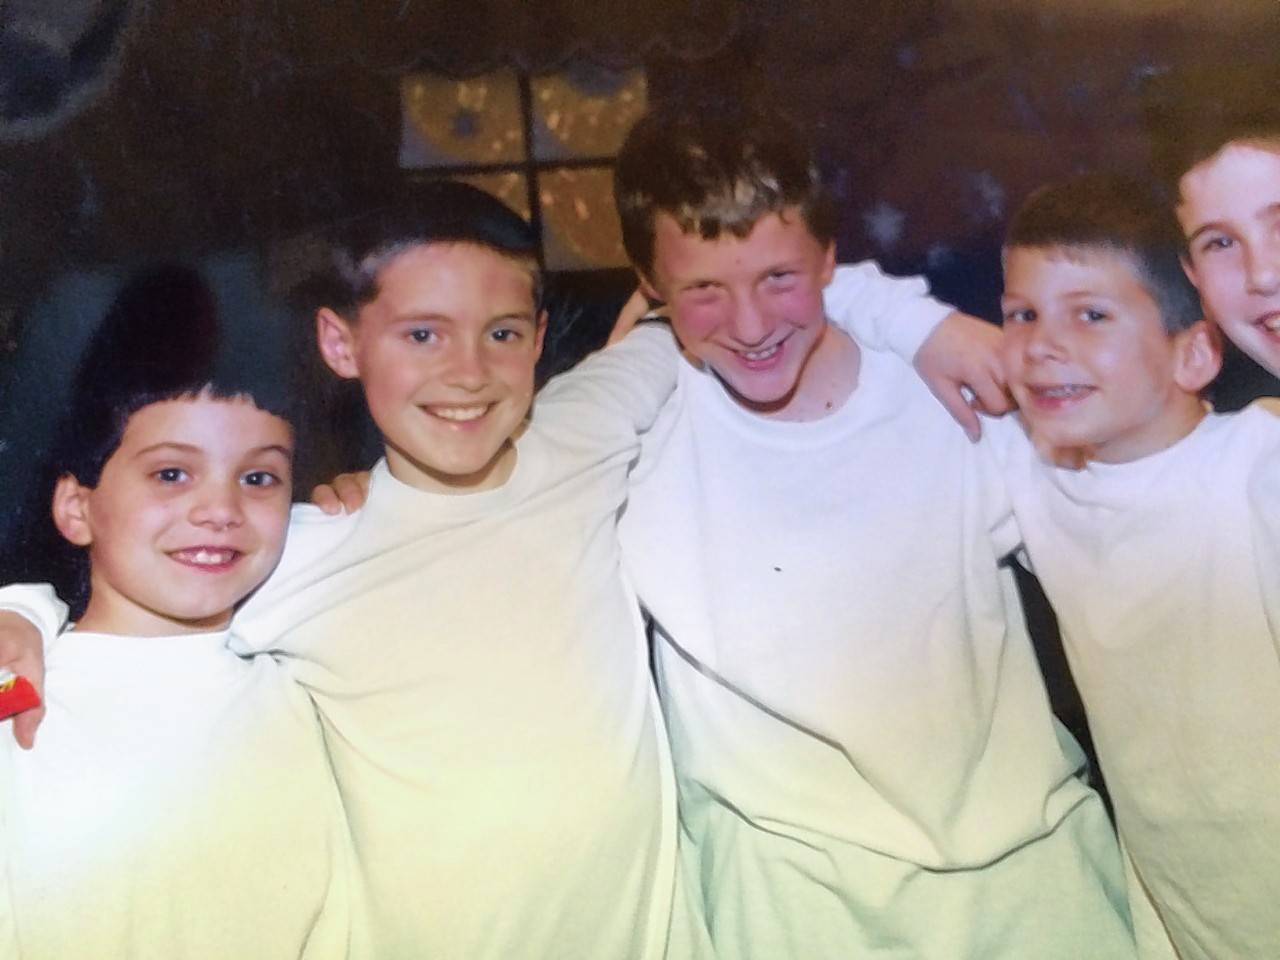 Joe Giovannetti, Harrison Scott, Max DeTogne, Collin Doruff and David Beiswenger, all in junior high, after a performance with Setting the State, circa 2008.